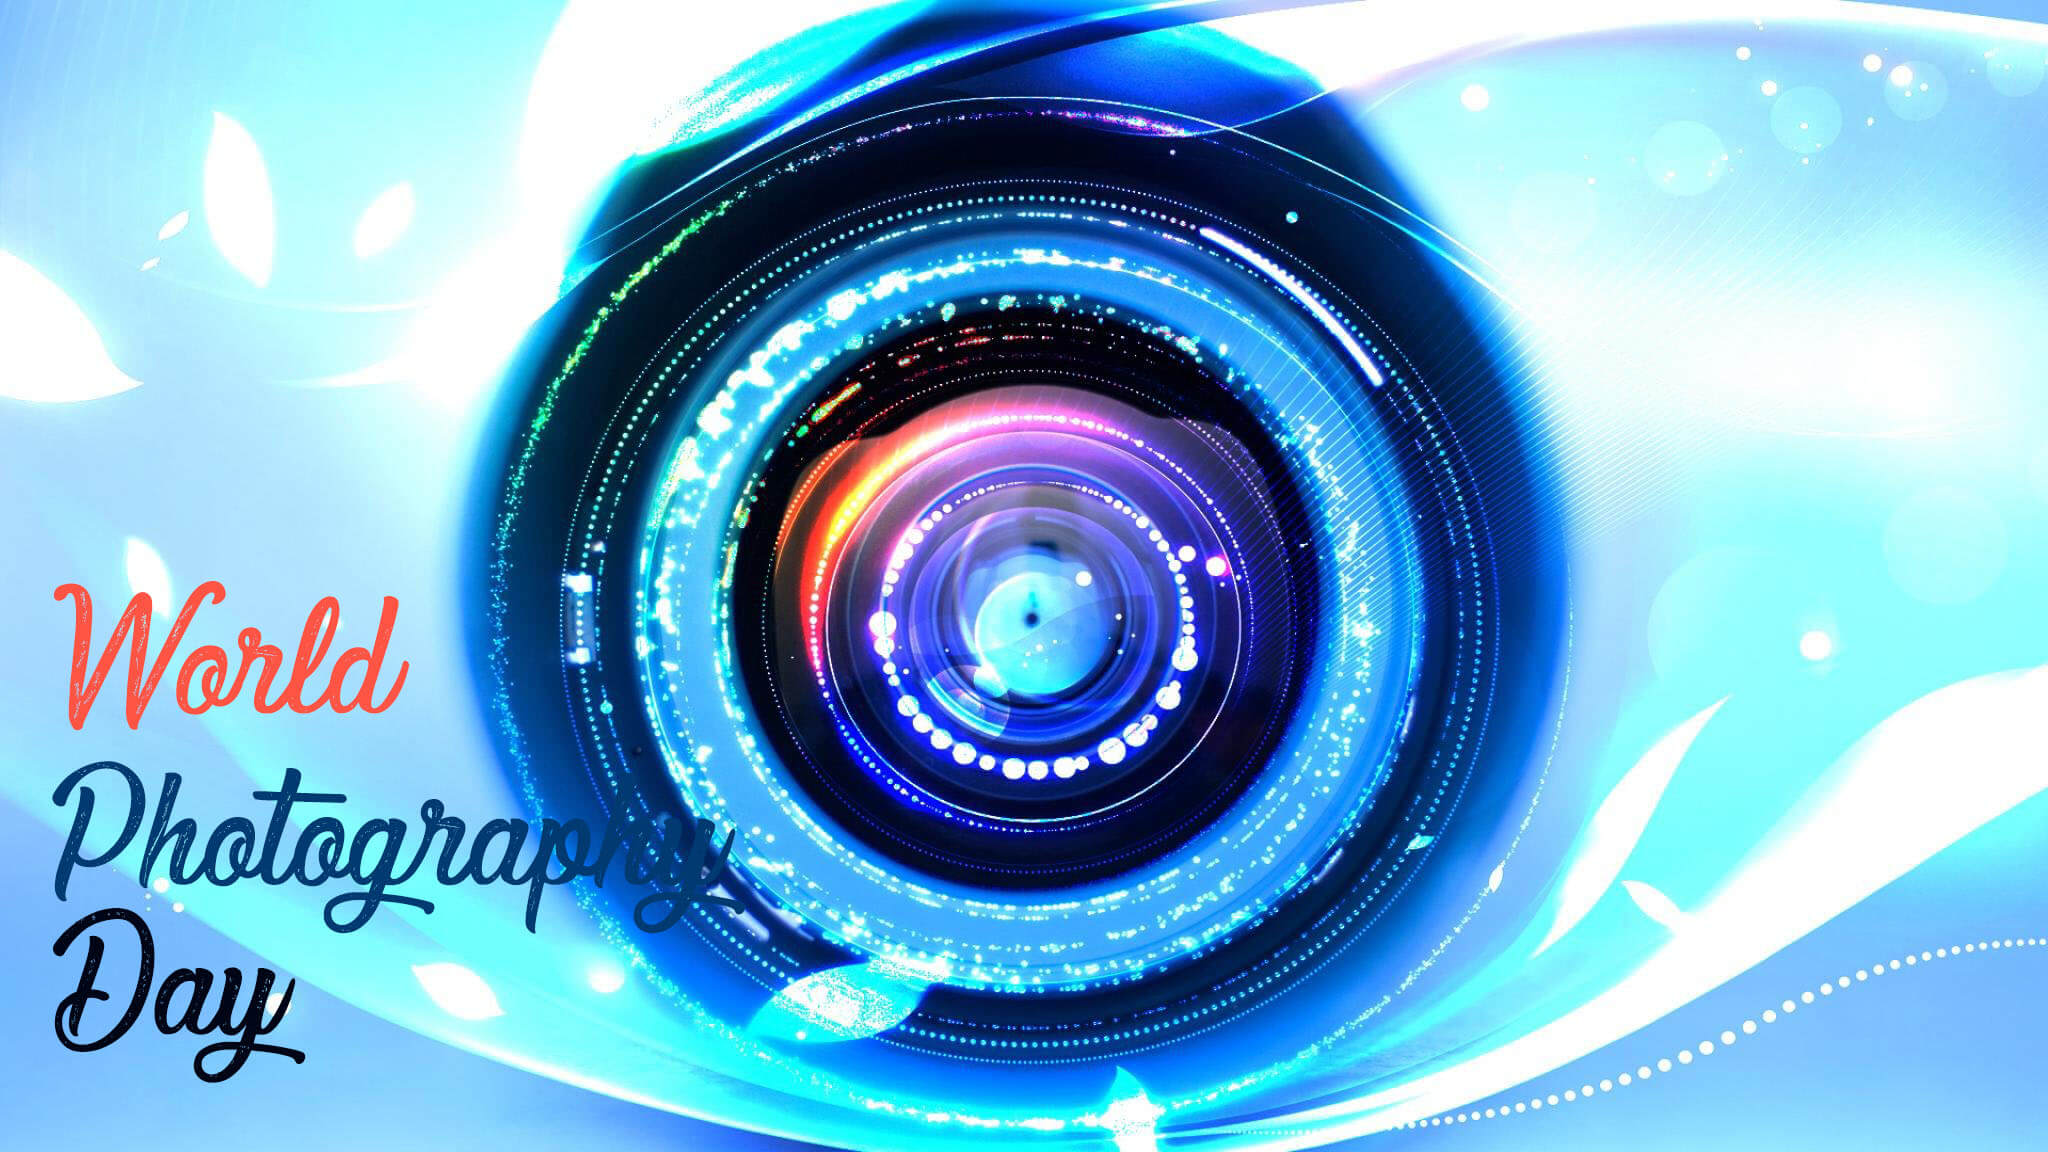 World Photography Day Camera Lens Hd Pc Wallpaper